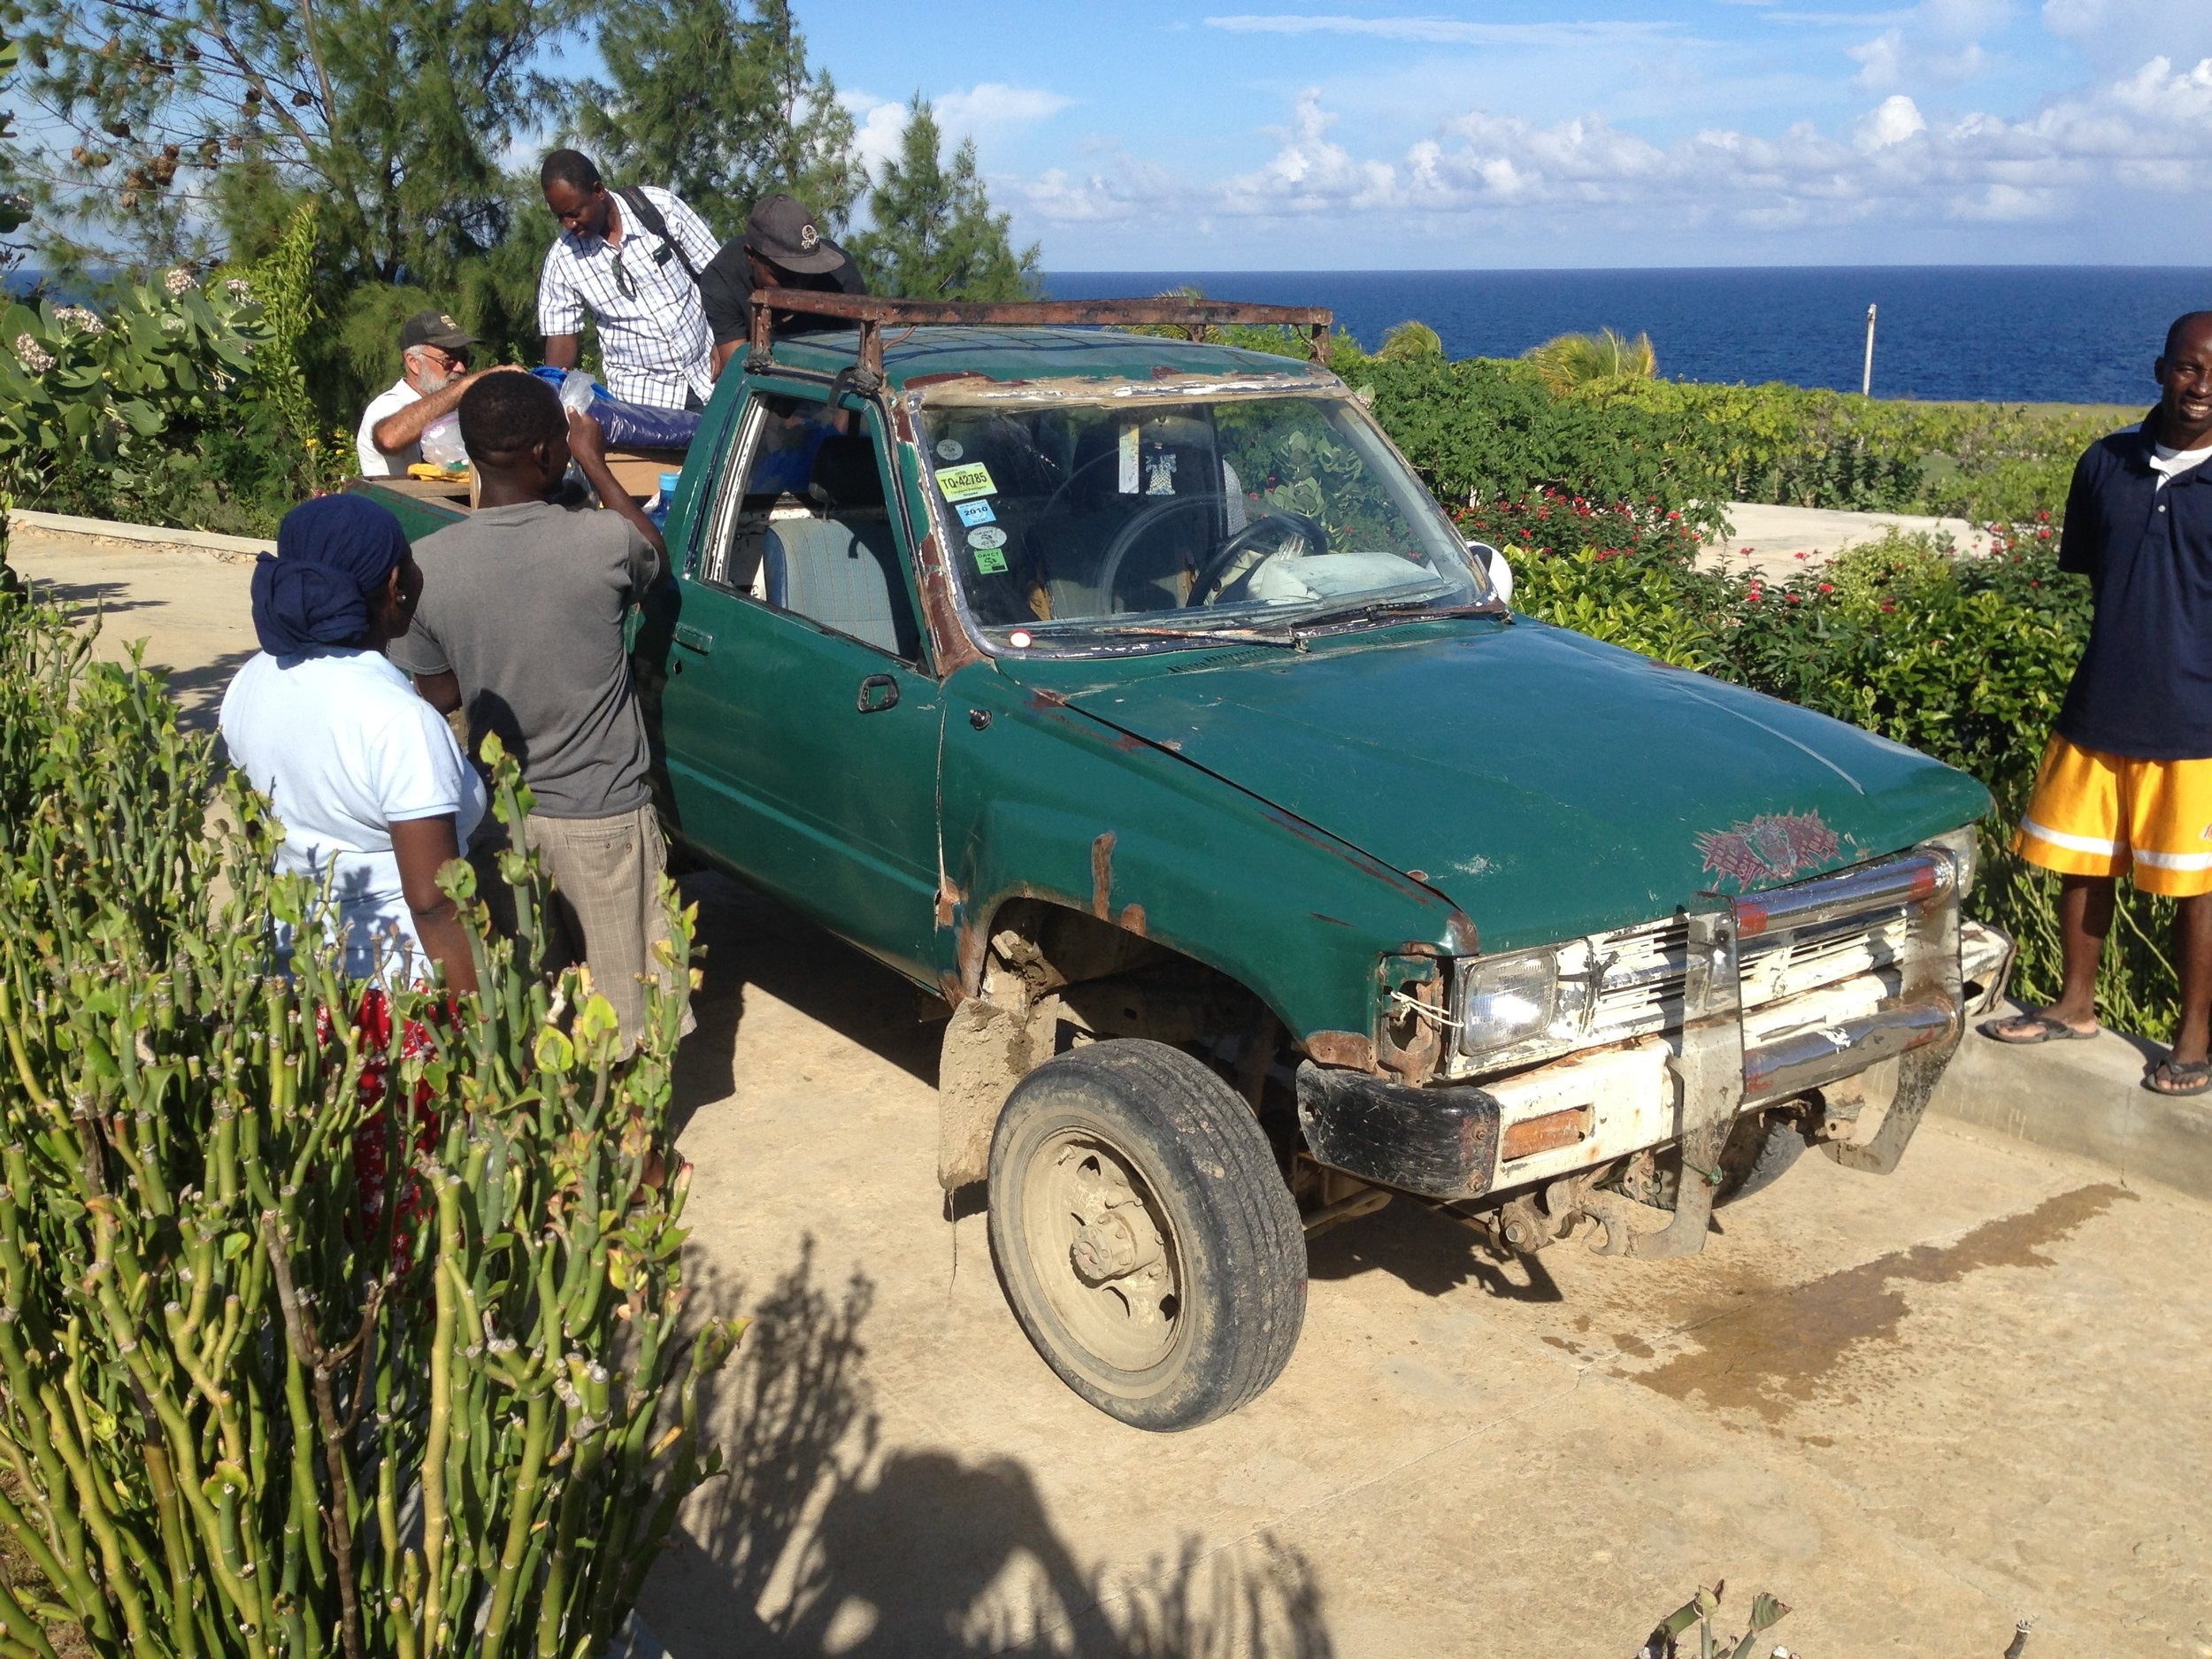 This old Toyota truck just keeps on trundling along the dirt roads of Jean Rabel.